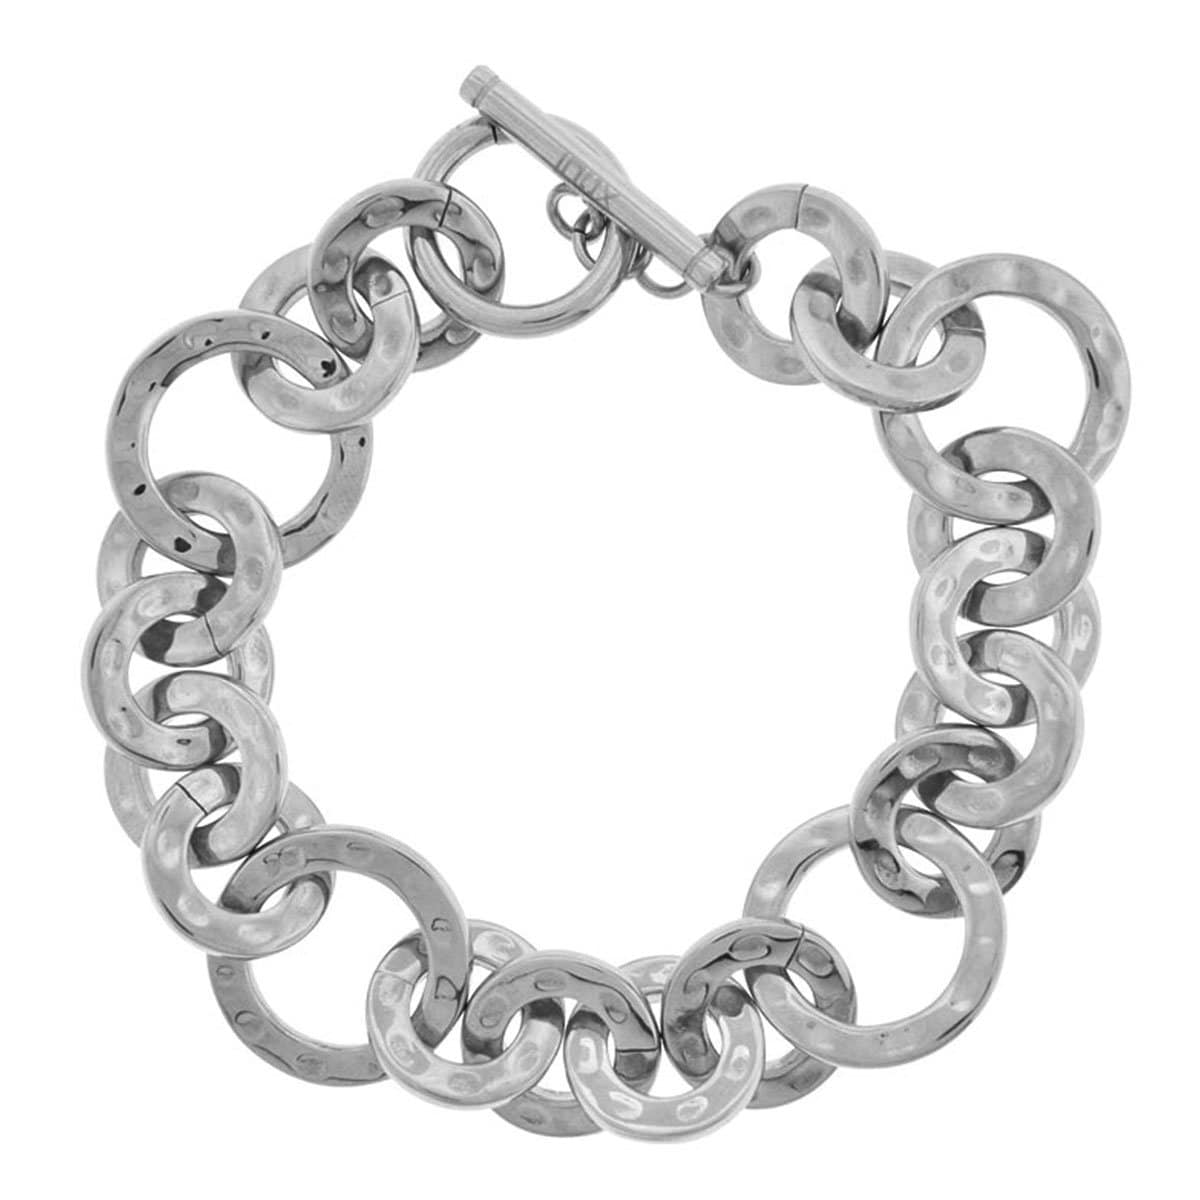 Silver Stainless Steel Polished & Hammered Round Link Toggle Bracelet